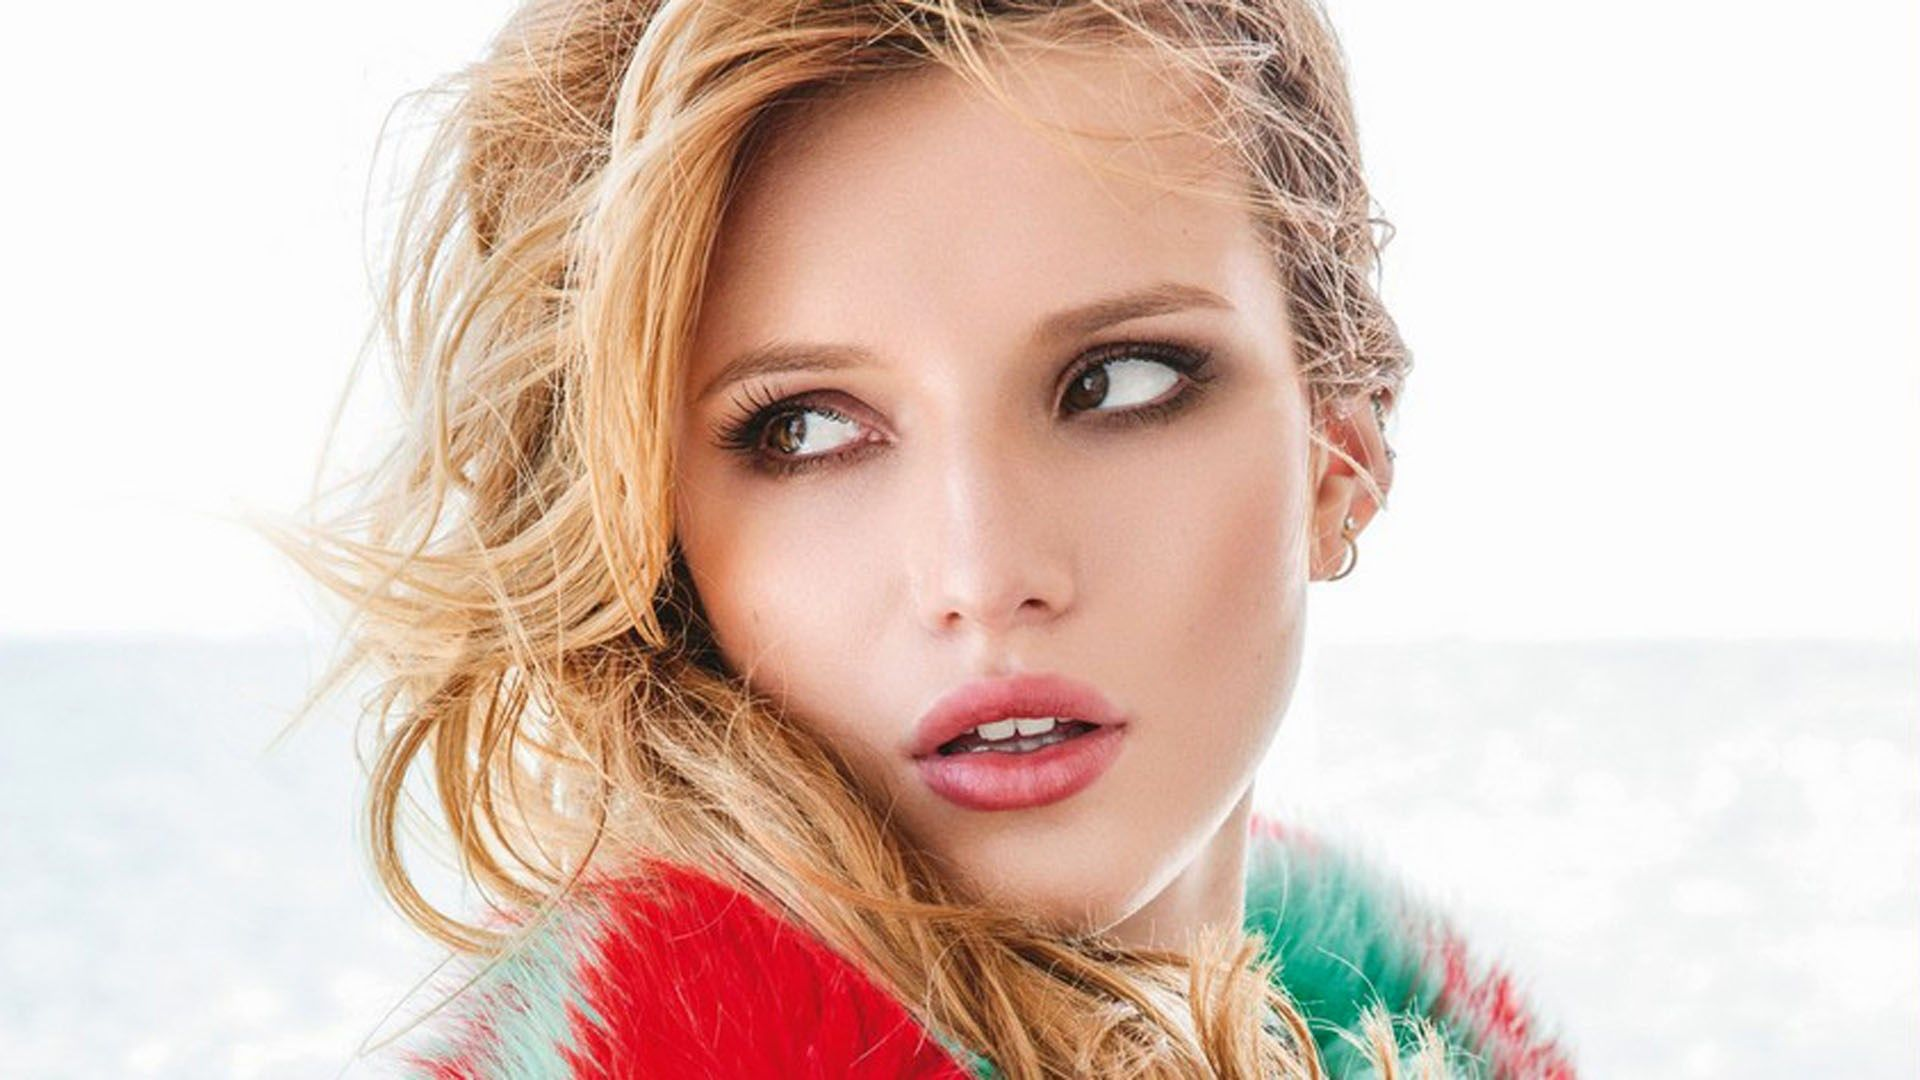 wallpapers for theme hd bella thorne in high resolution